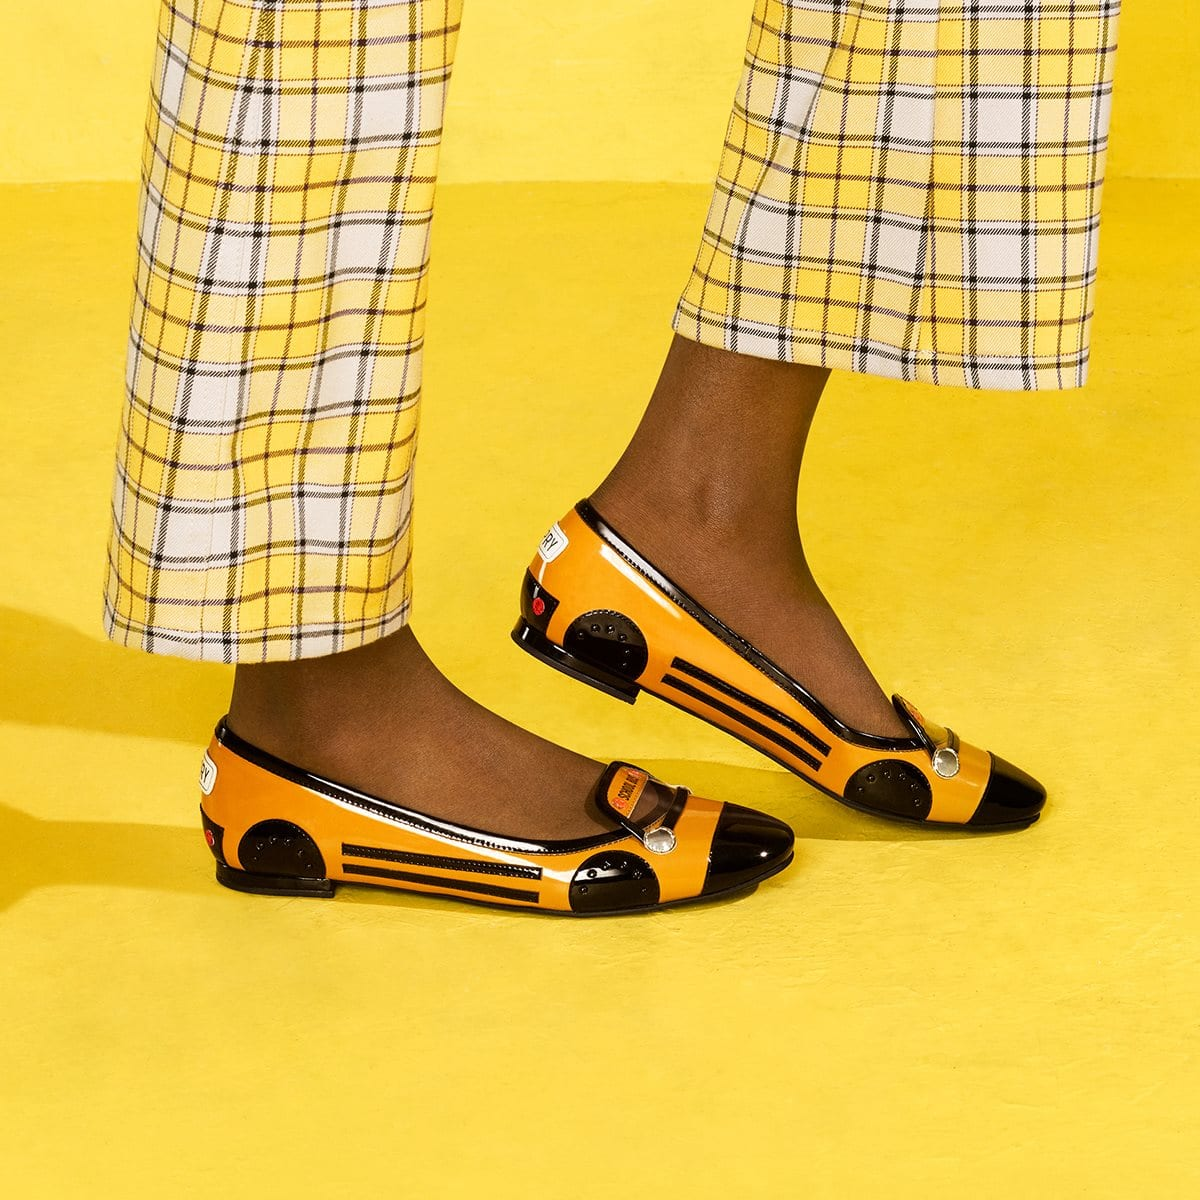 Pack up your pencils and stay smart in theseflats that aren't too cool for school